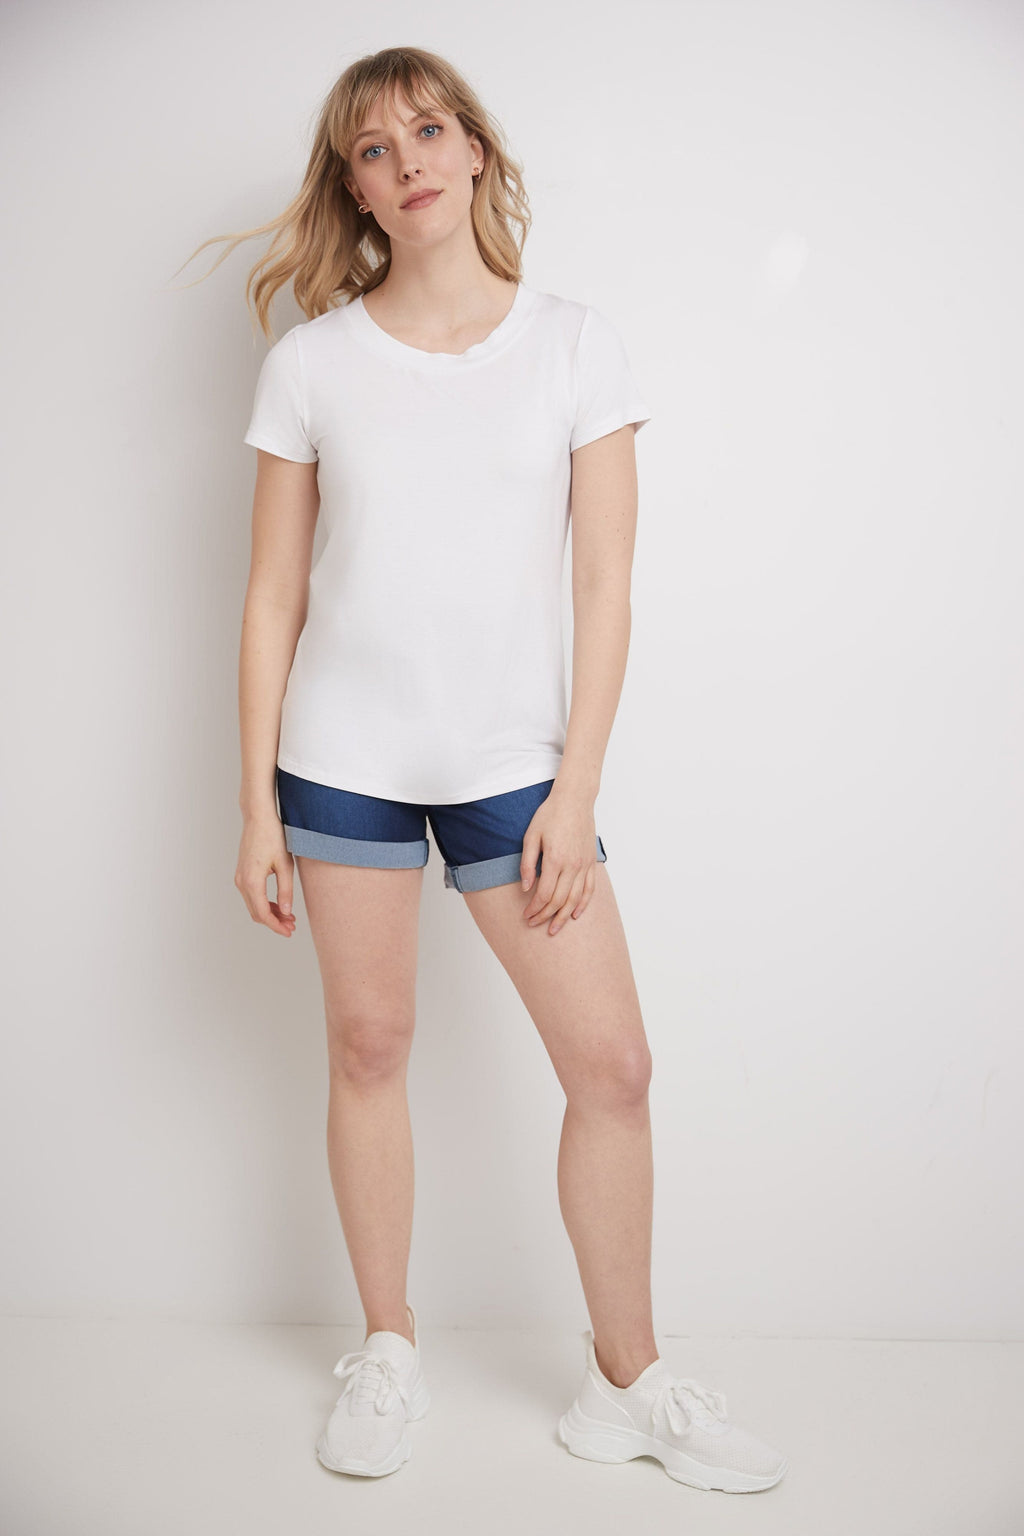 Short-Sleeve Business Casual T-Shirt with Scooped Neck